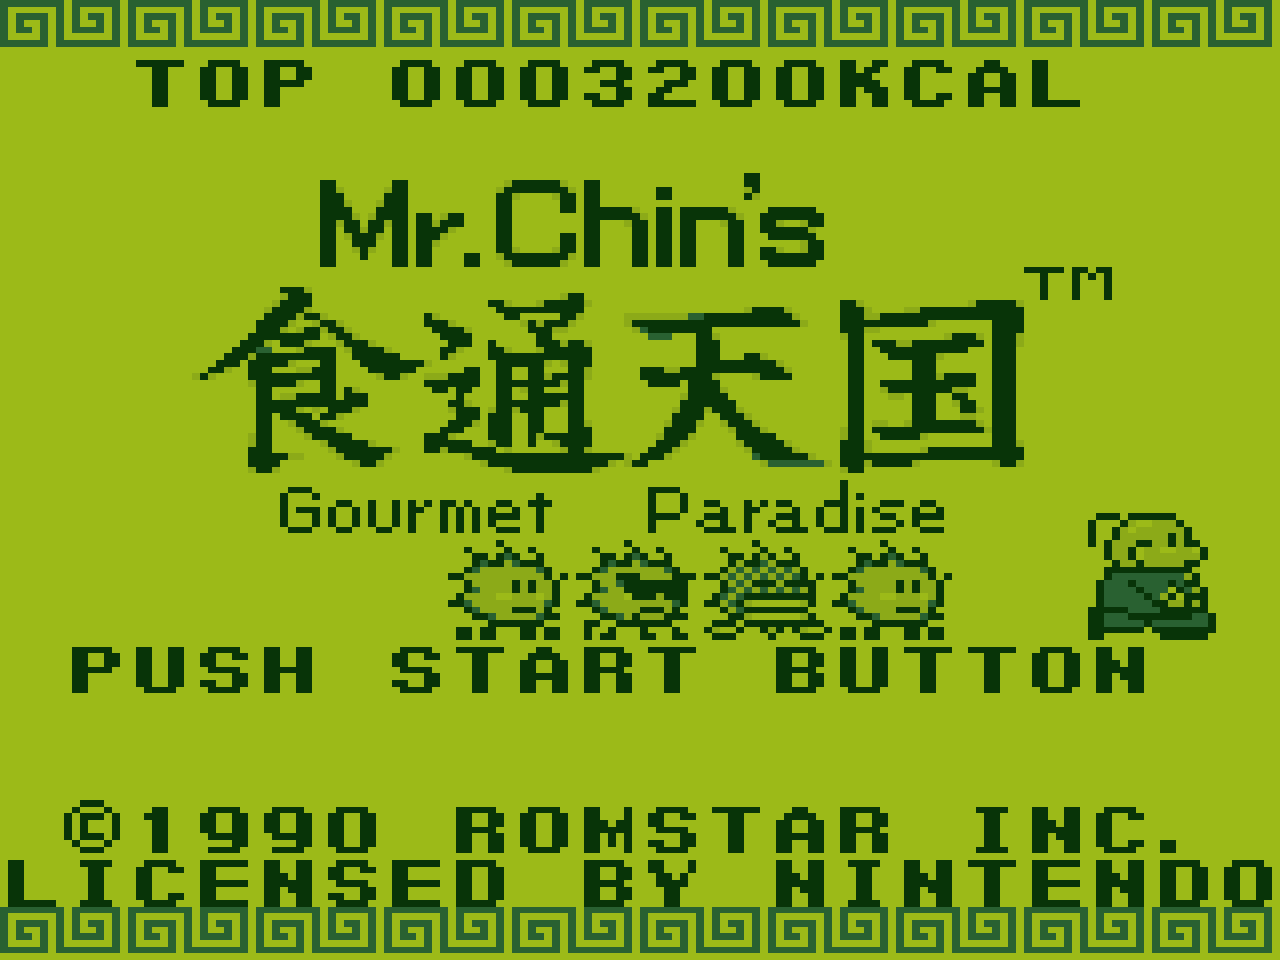 https://s3.eu-west-3.amazonaws.com/games.anthony-dessalles.com/Mr Chin's Gourmet Paradise GB 2020 - Screenshots/Mr Chin's Gourmet Paradise-201113-173209.png